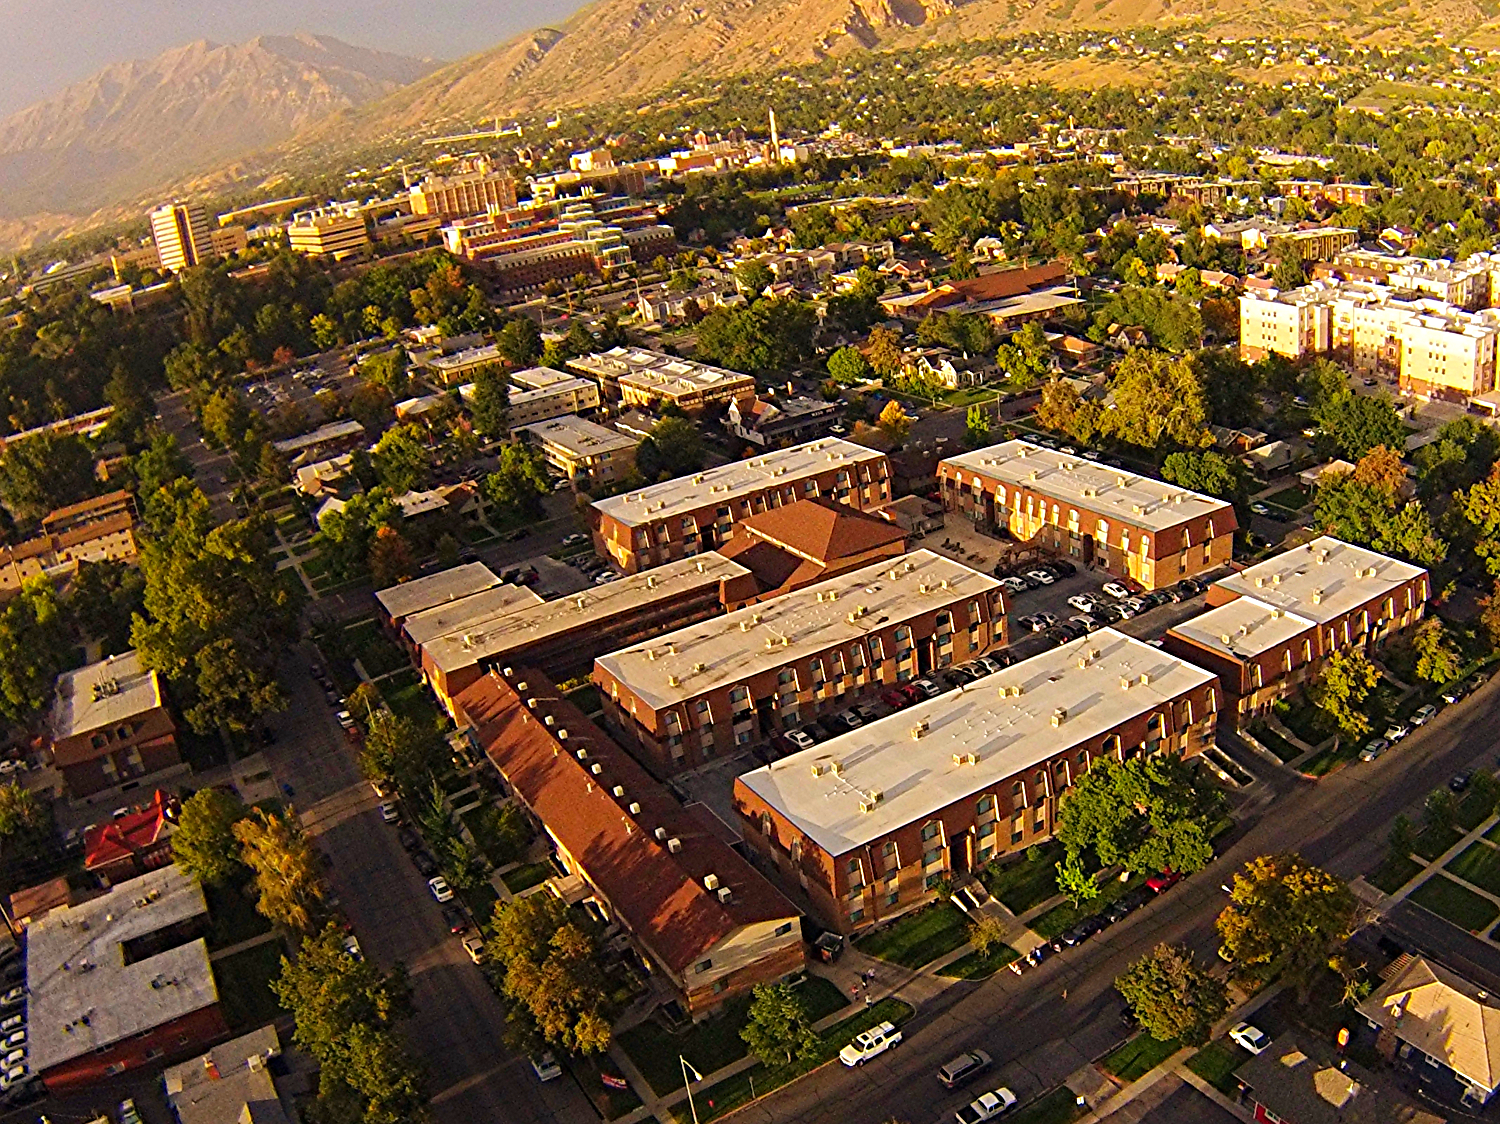 Acquired in November 2013, Liberty Square is an 810 bed student housing property located just two block from Brigham Young University